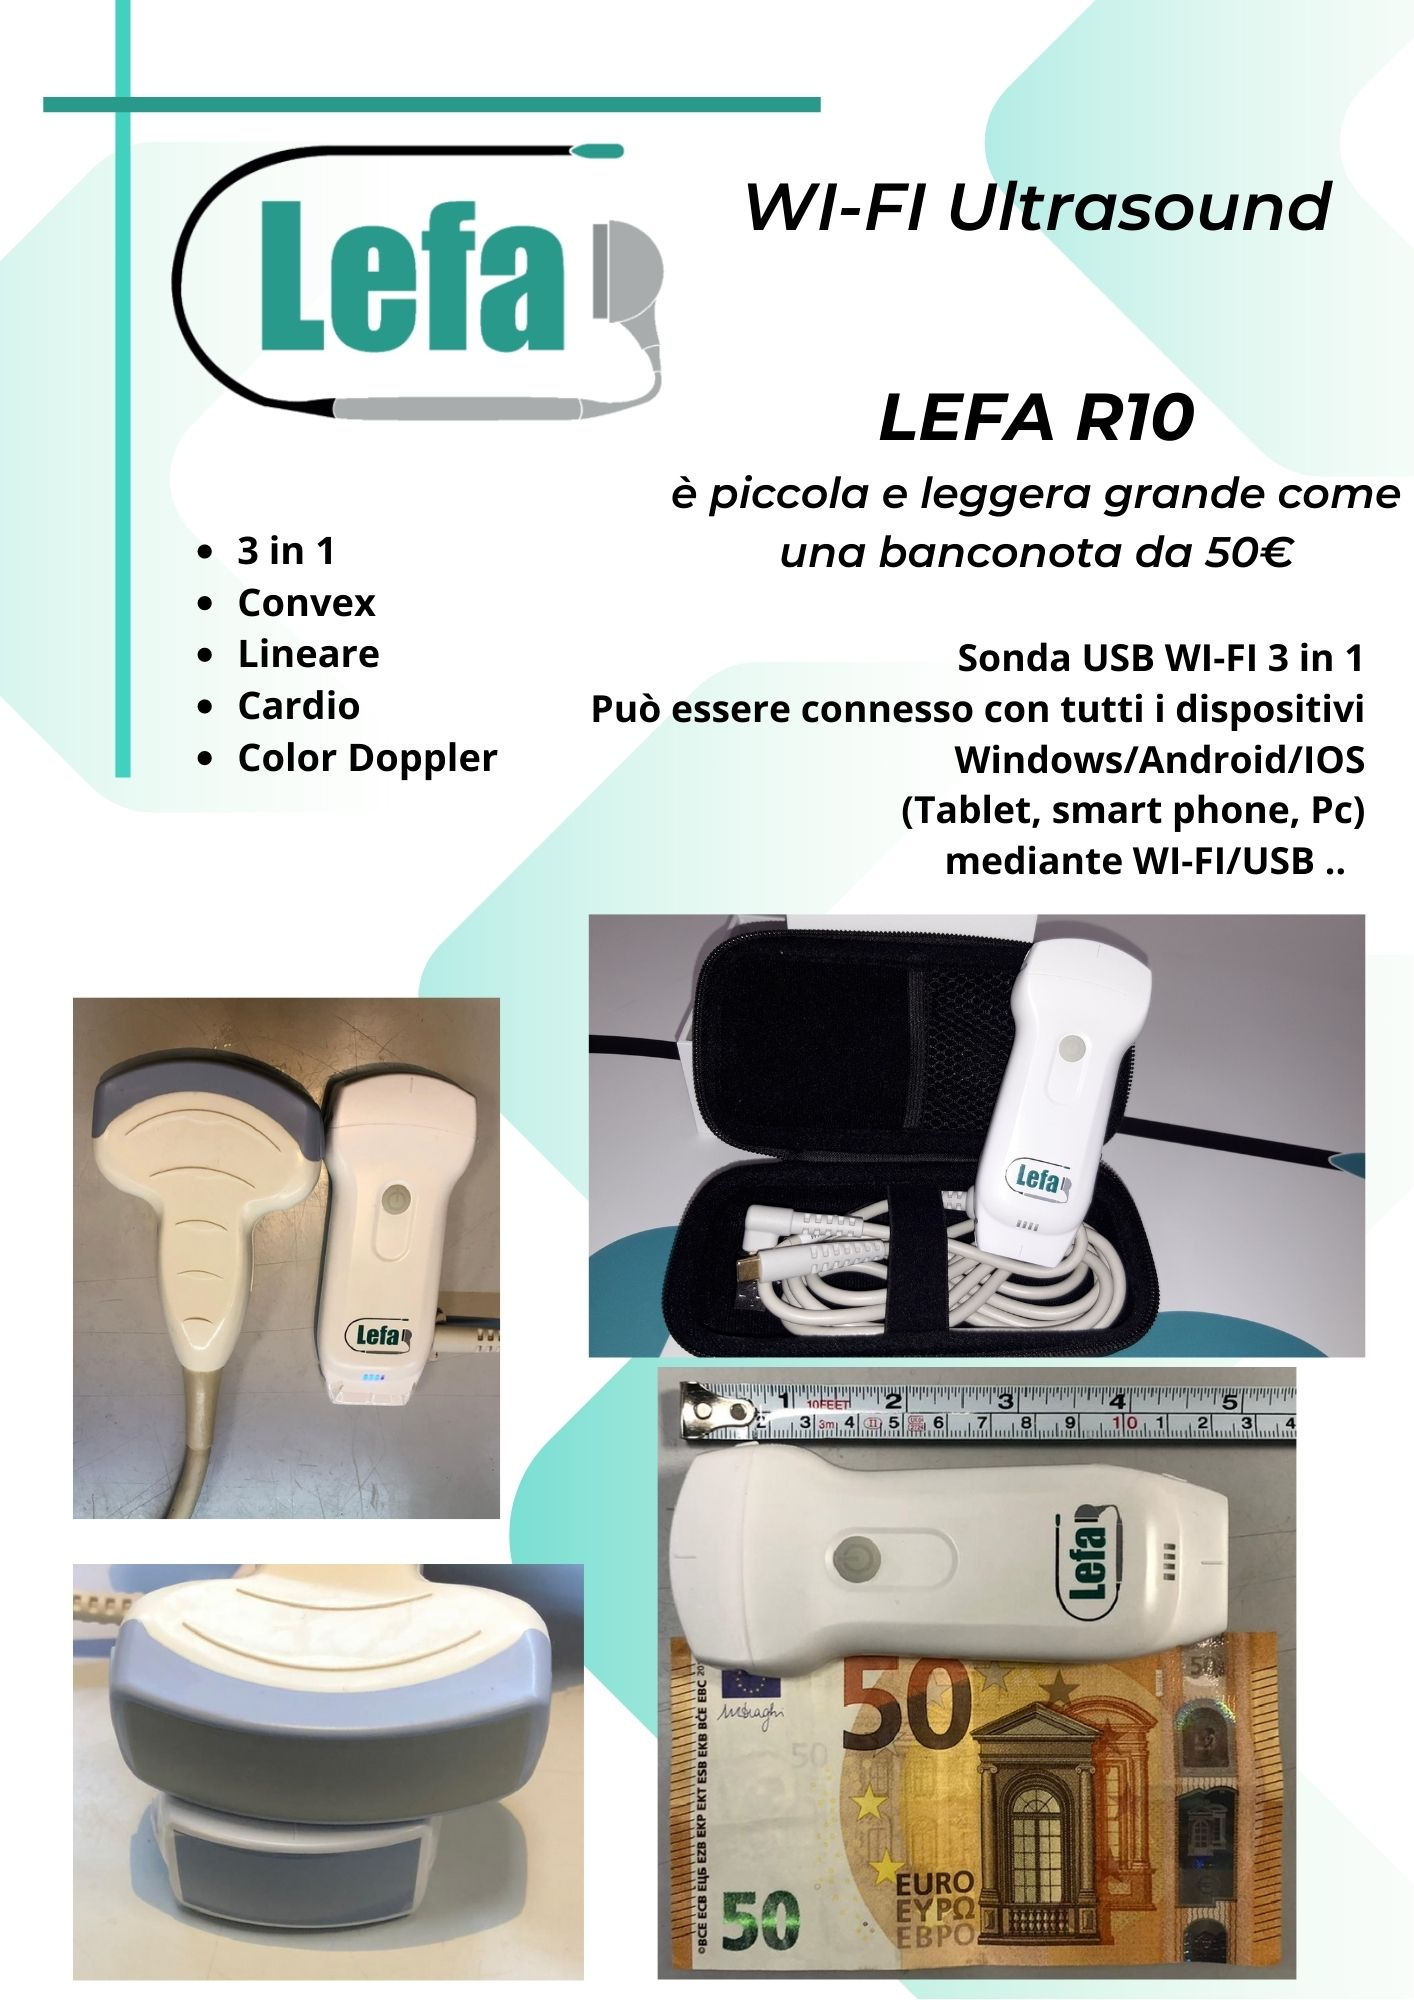 Copia-di-Wifi-probes-brochure-1.jpg